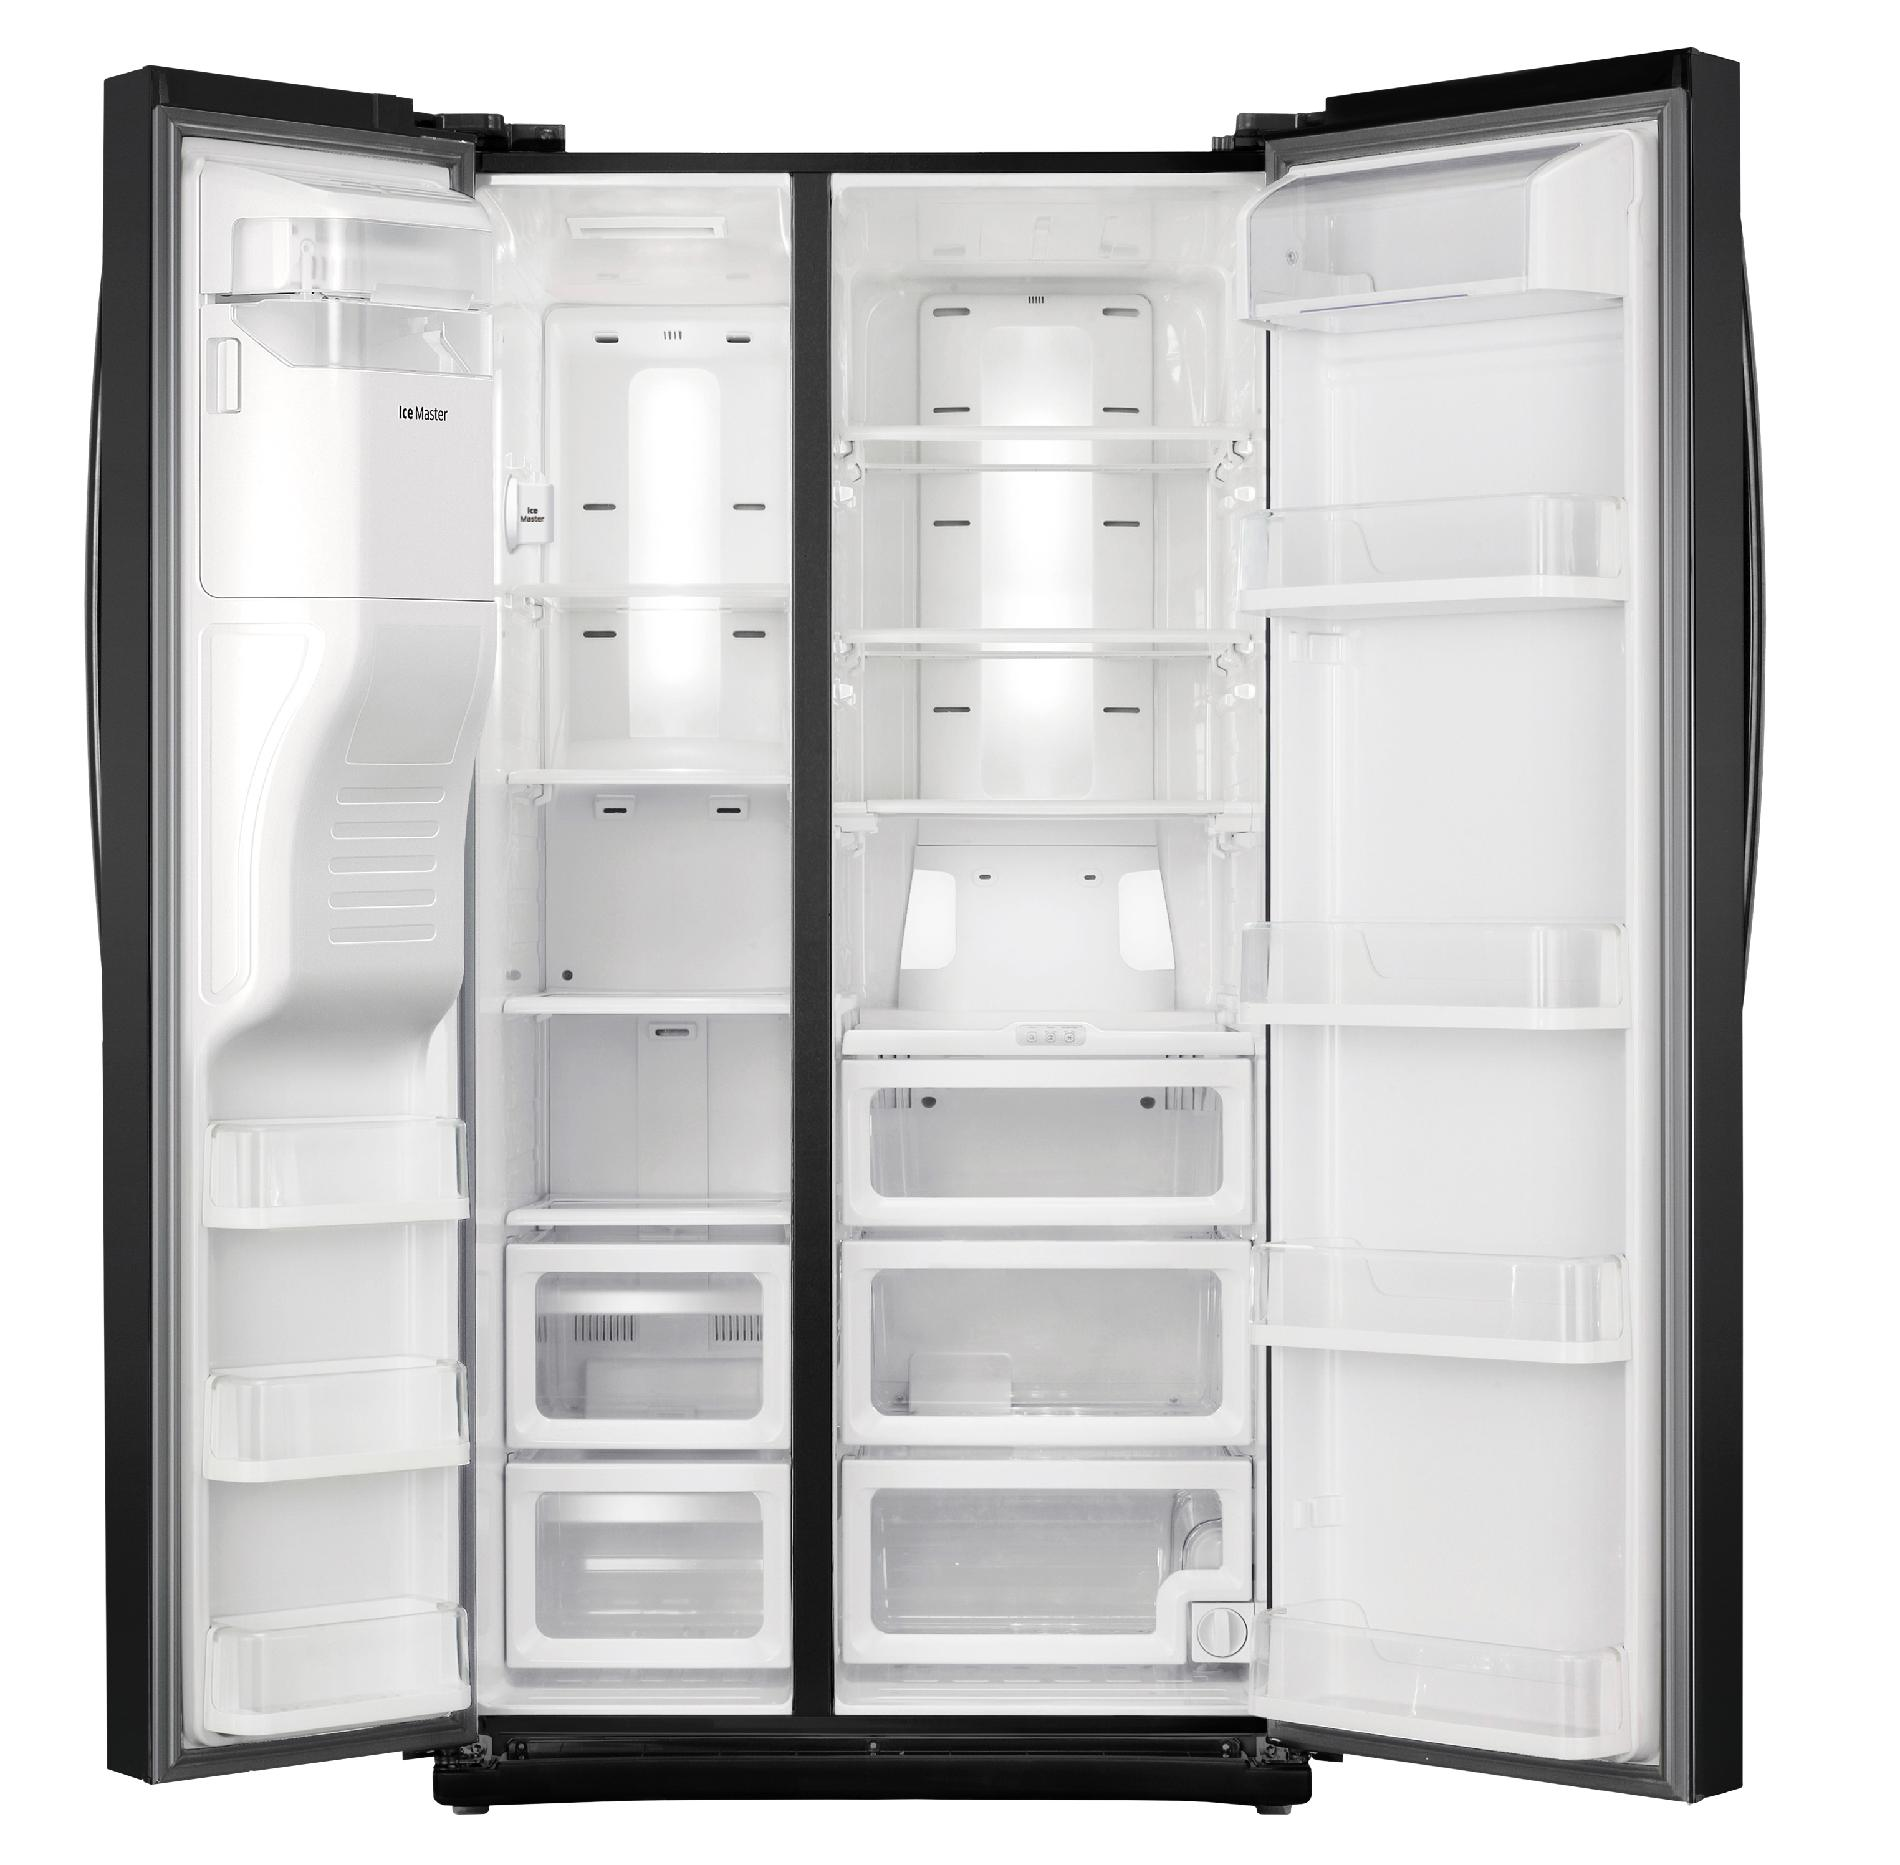 Samsung 25 cu. ft Side-by-Side Refrigerator w/ CoolSelect Zone™ - Black